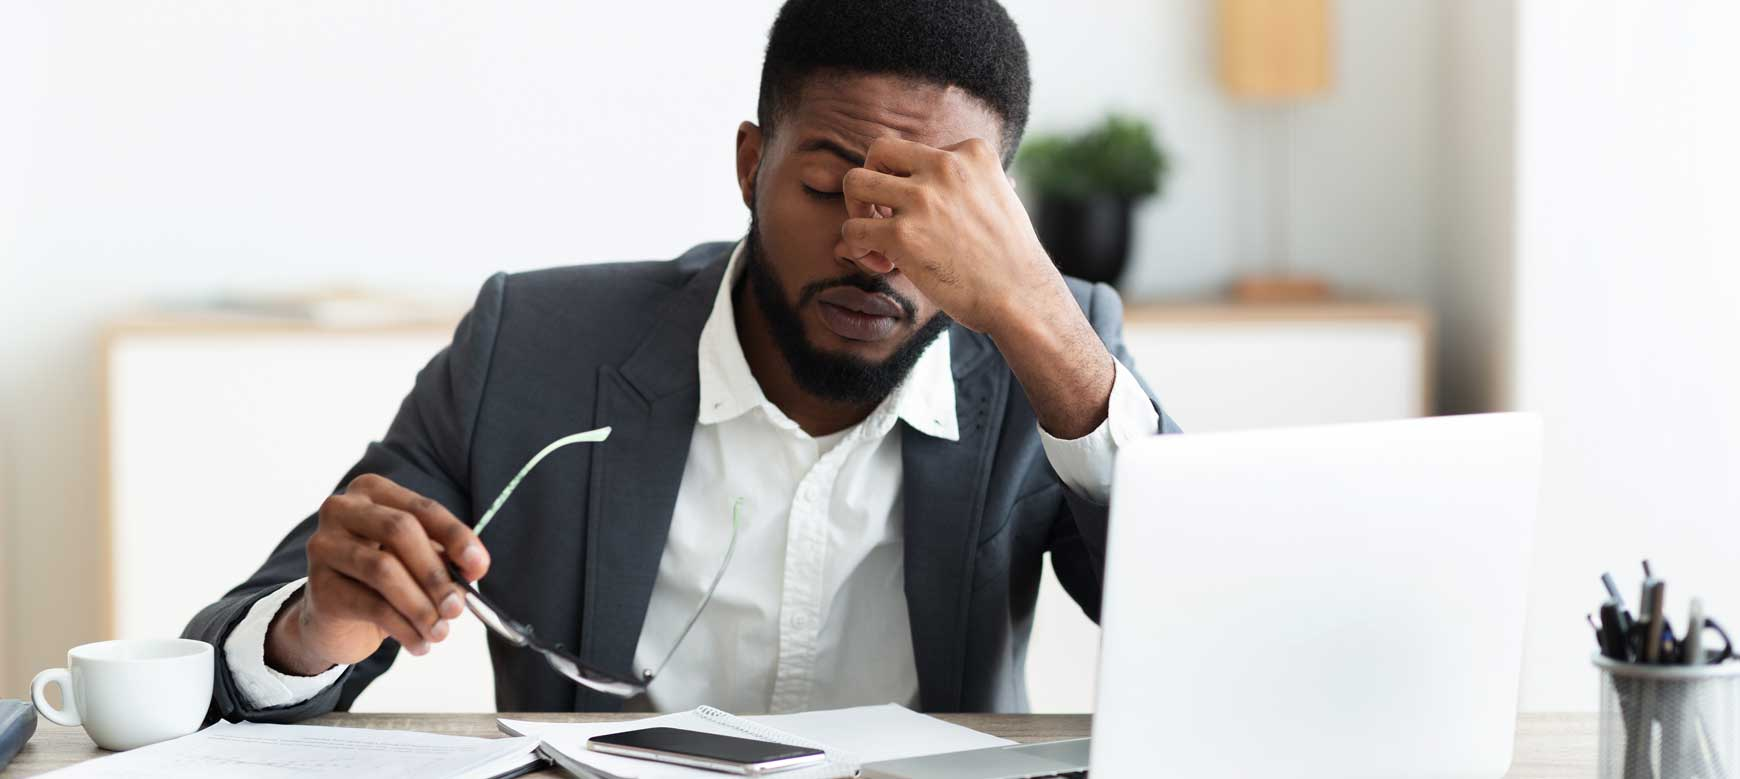 Man in front of computer with hands to his forehead looking worn out